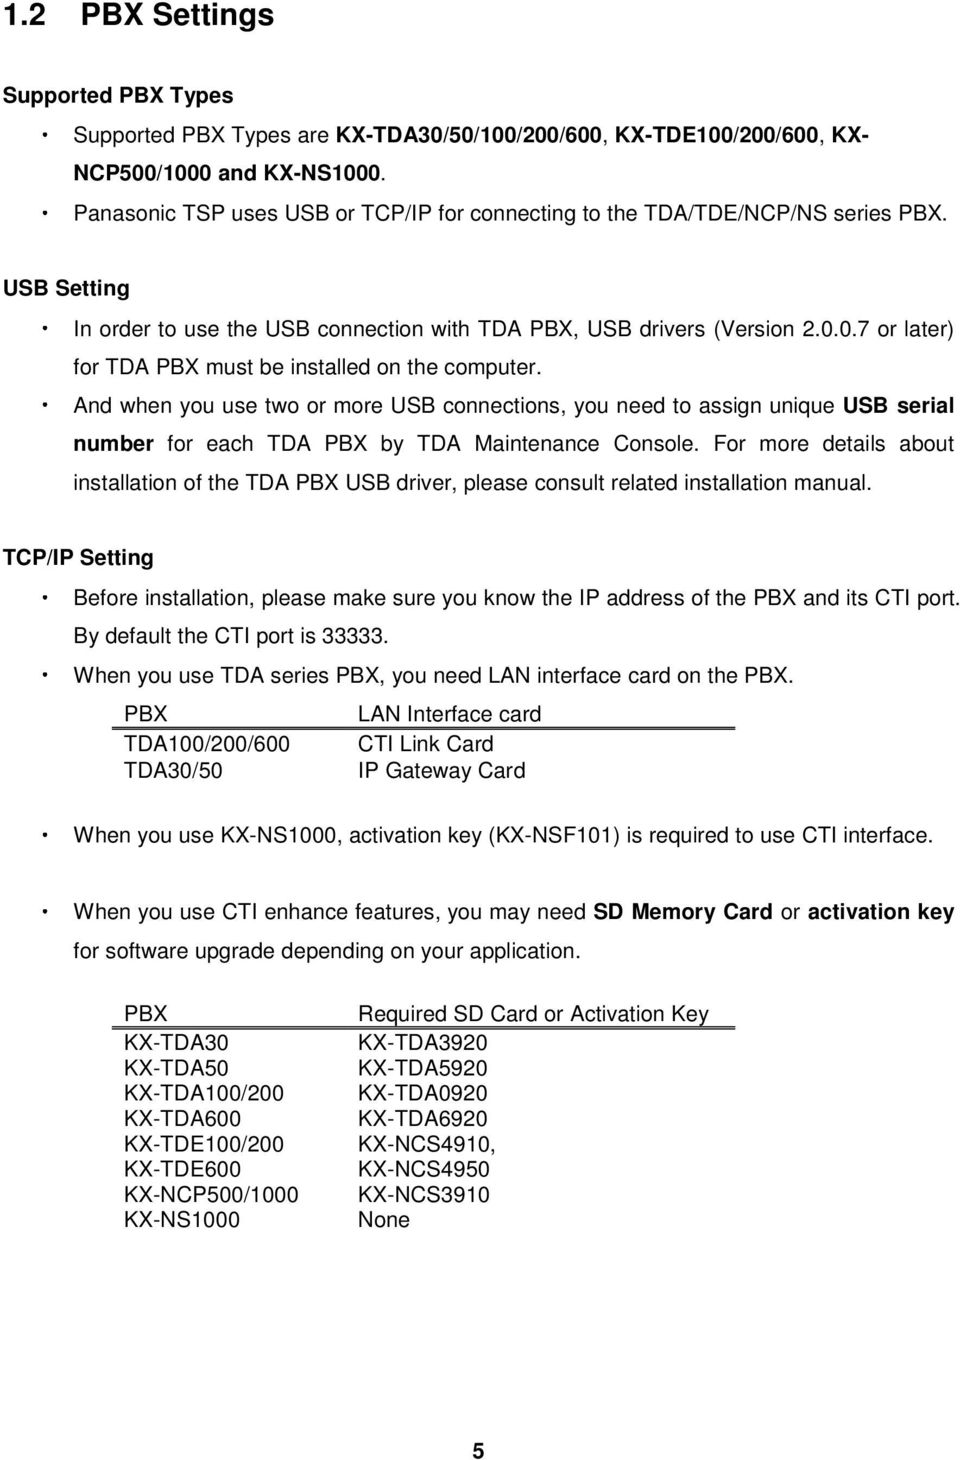 0.7 or later) for TDA PBX must be installed on the computer. And when you use two or more USB connections, you need to assign unique USB serial number for each TDA PBX by TDA Maintenance Console.